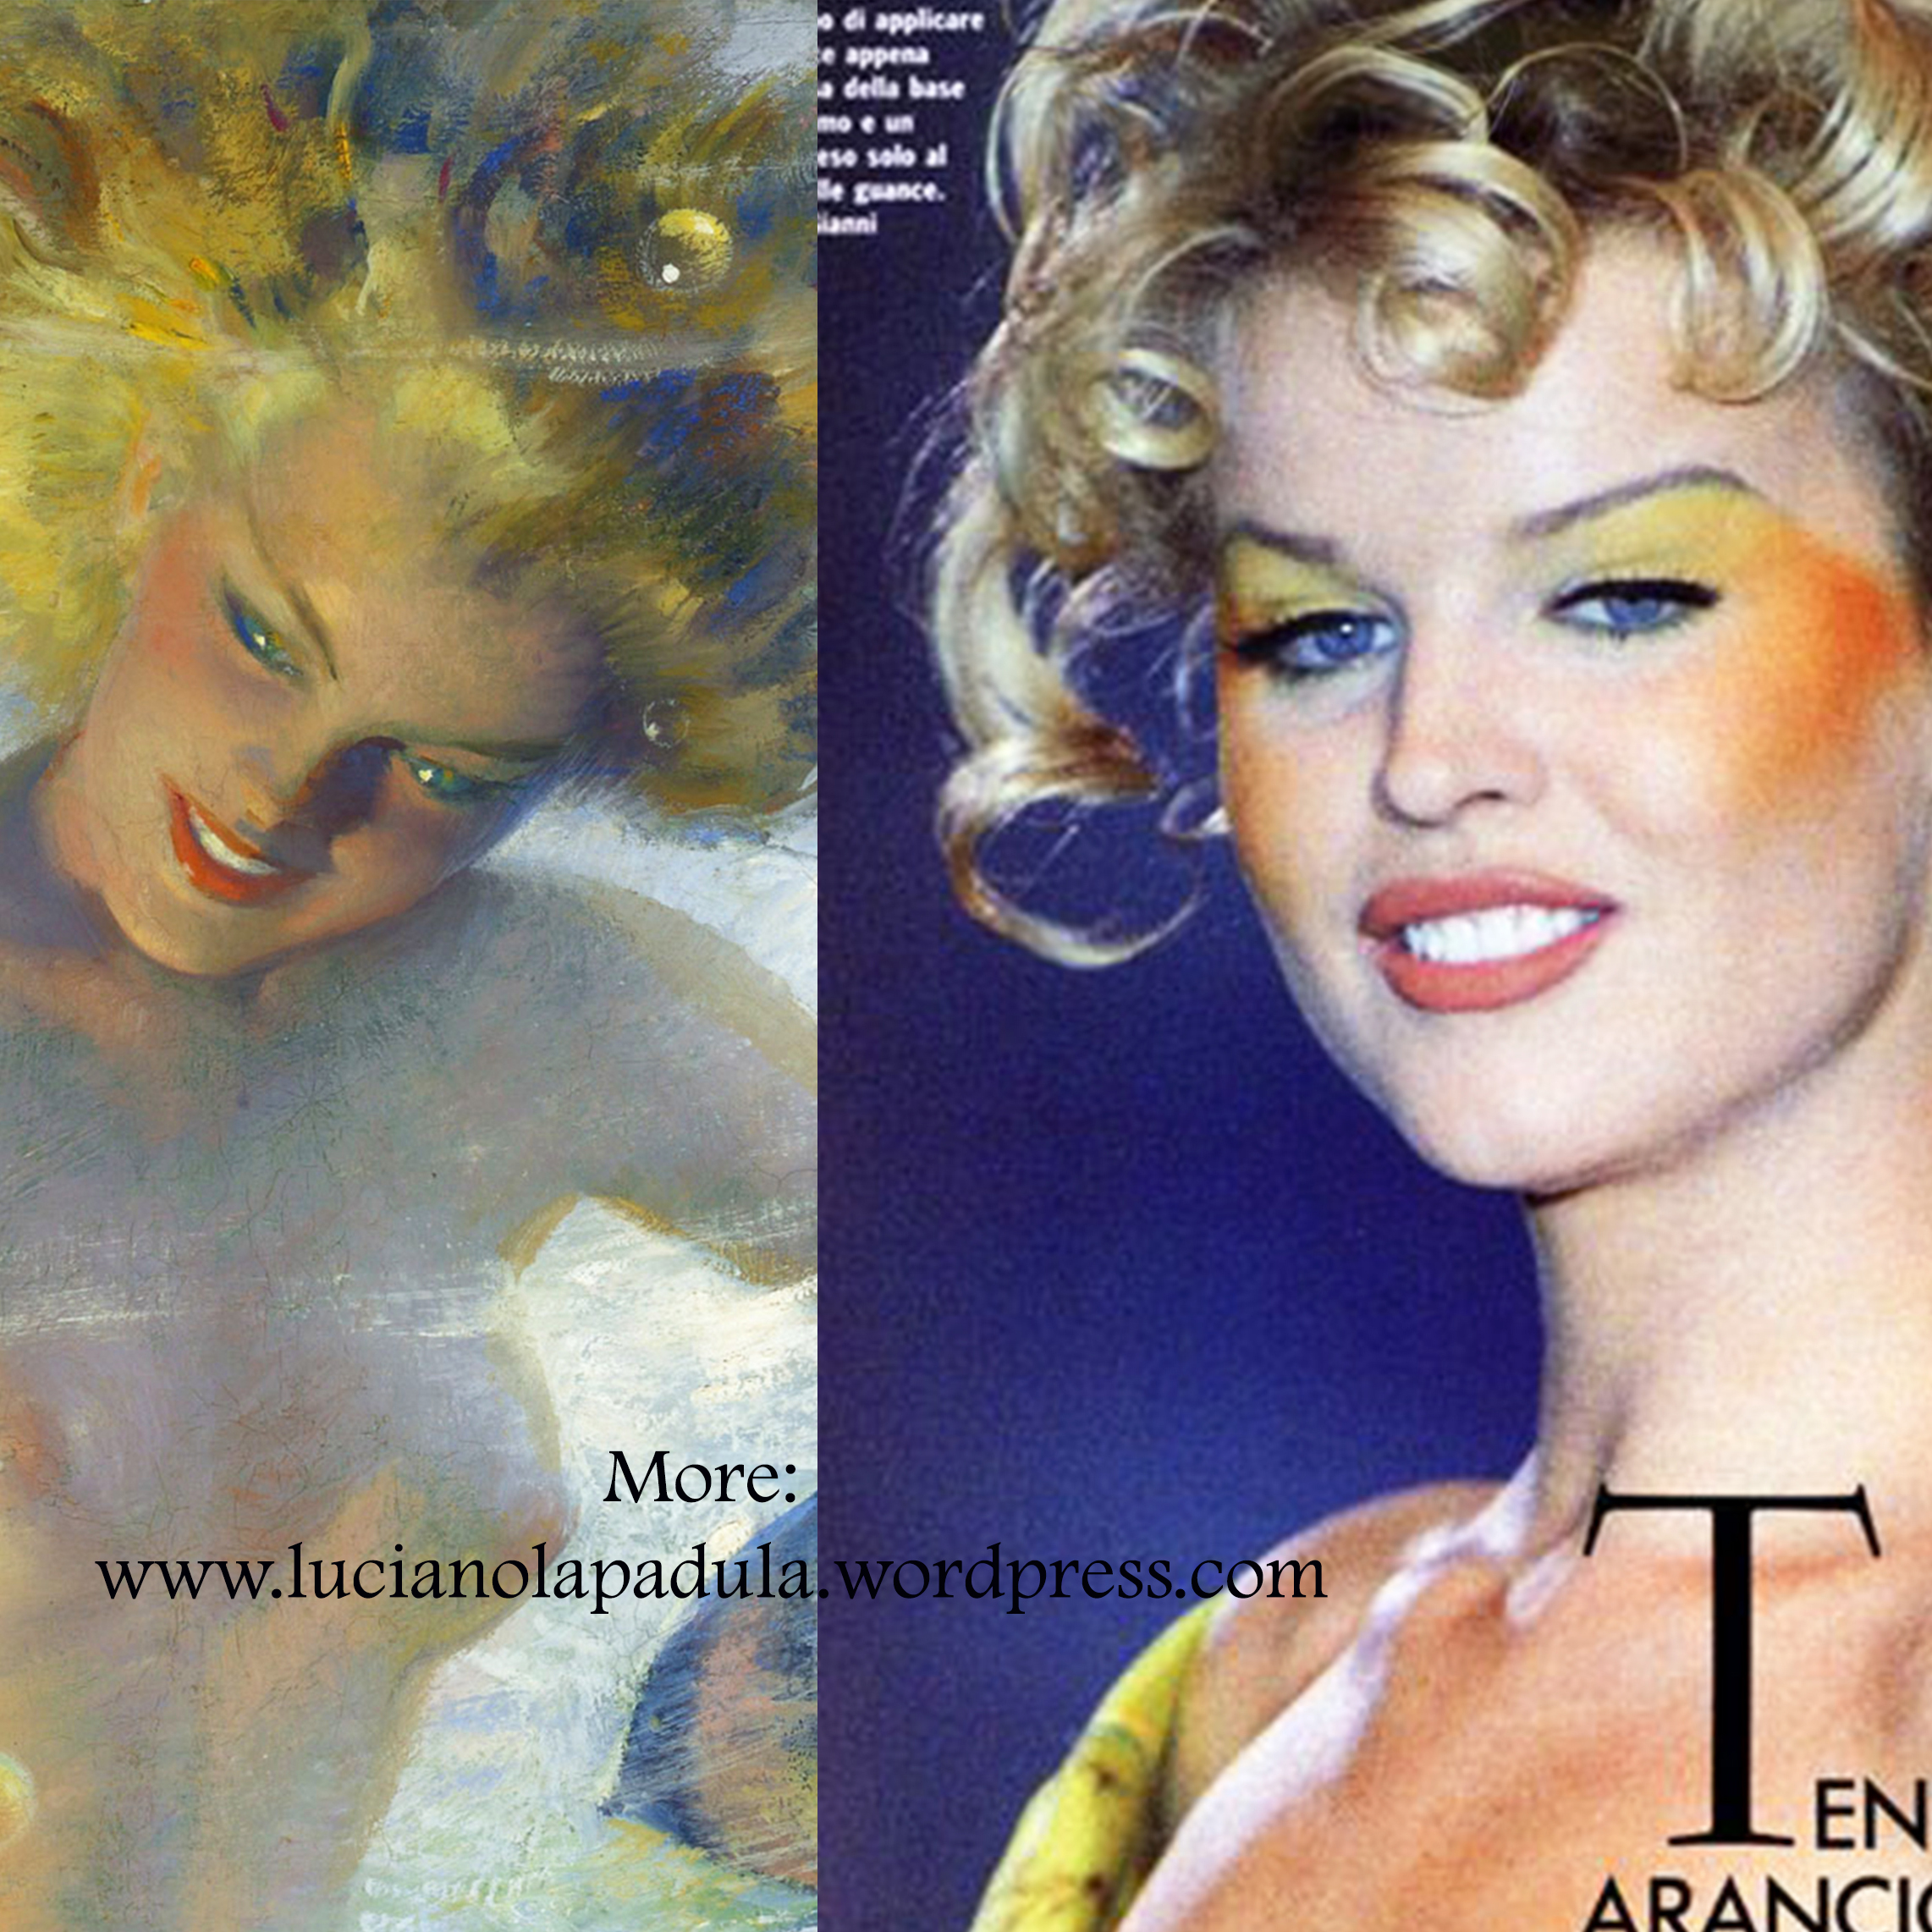 andrew loomis supermodel 90s 40s hairstyle makeup art blog fashion museum storia luciano lapadula moda yves saint laurent ss summer 1996 90er eva herzigova top